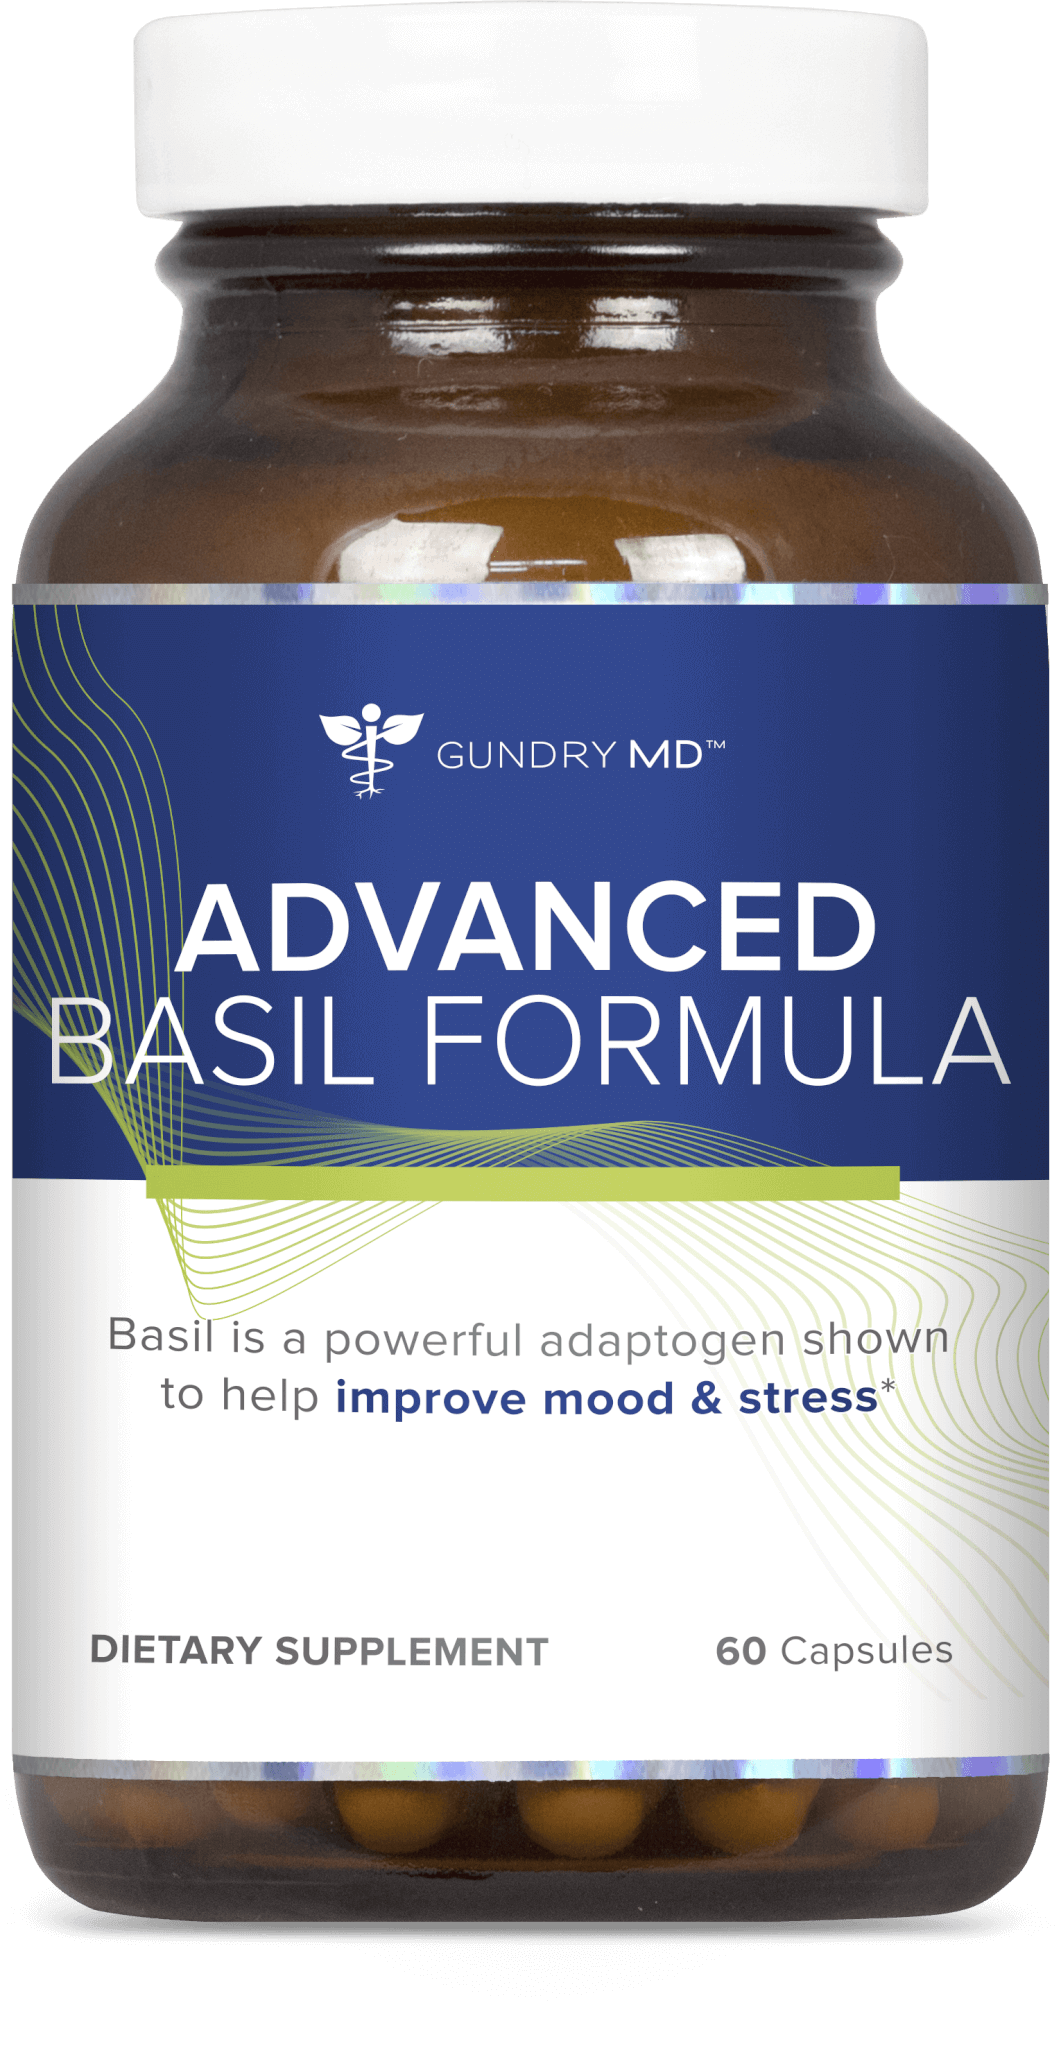 Advanced Basil Formula